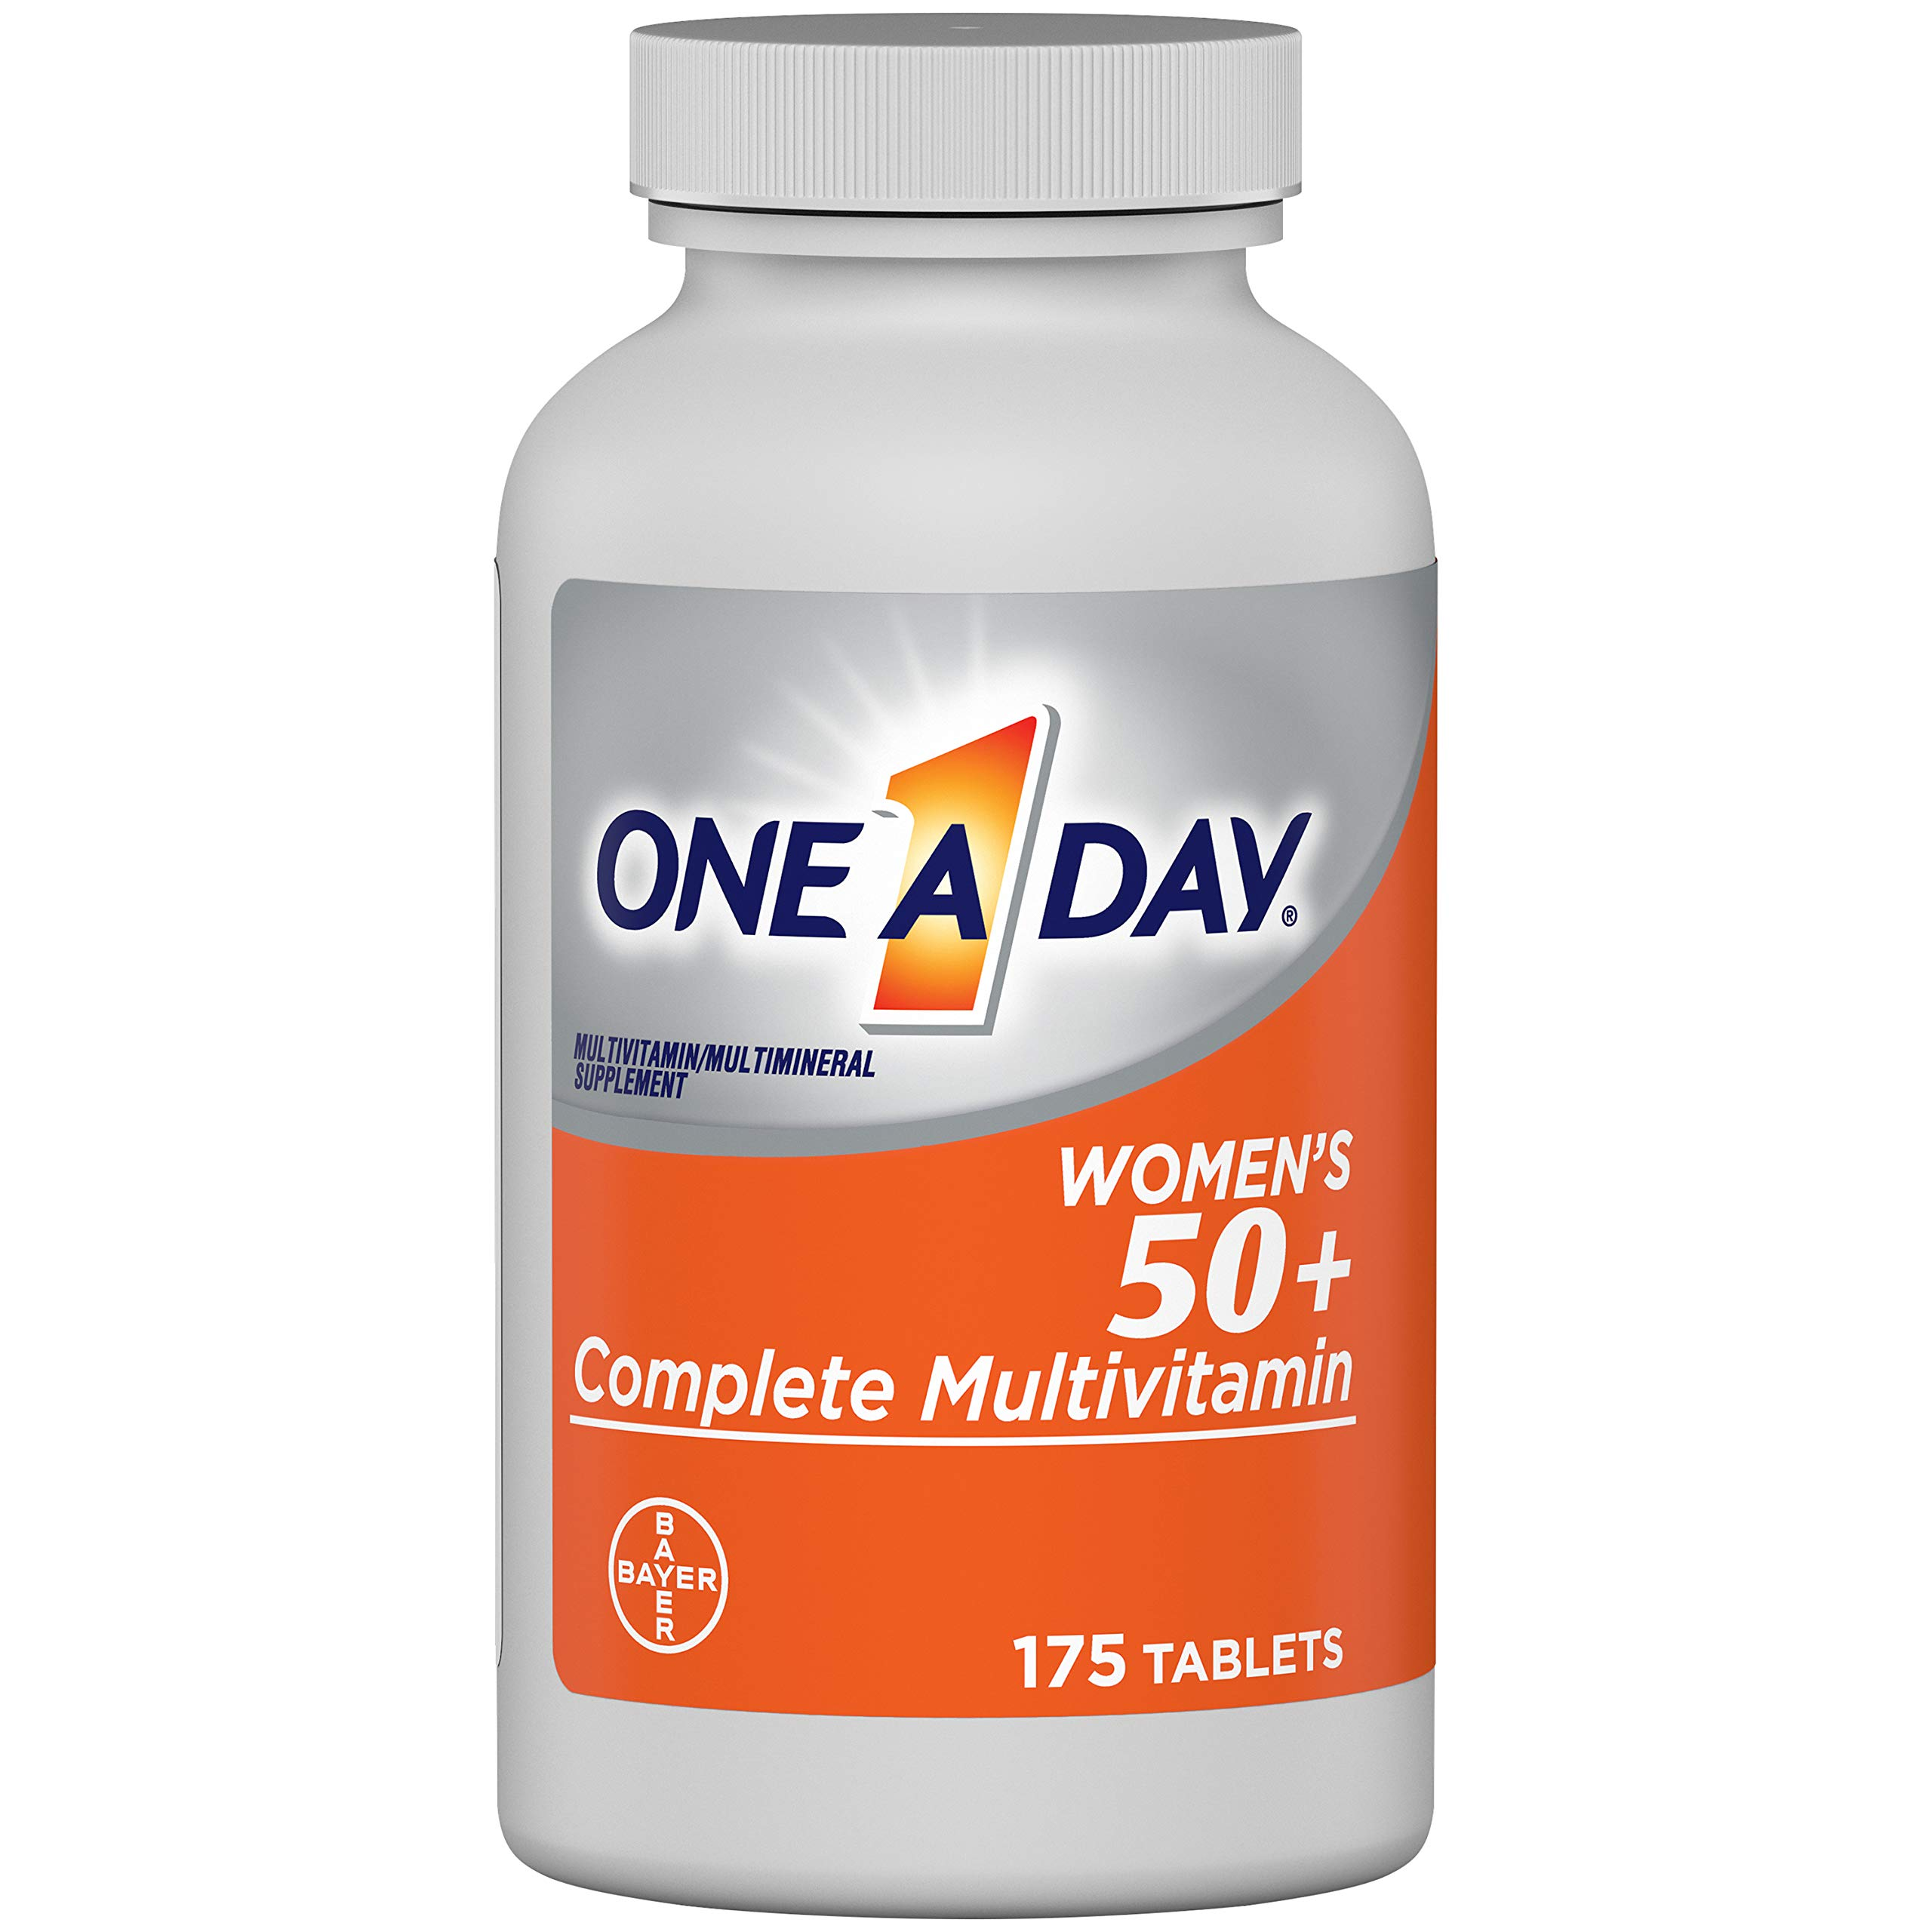 One A Day Women's 50+ Multivitamins, Supplement with Vitamin A, Vitamin C, Vitamin D, Vitamin E and Zinc for Immune Health Support, Calcium & More, 175 Count